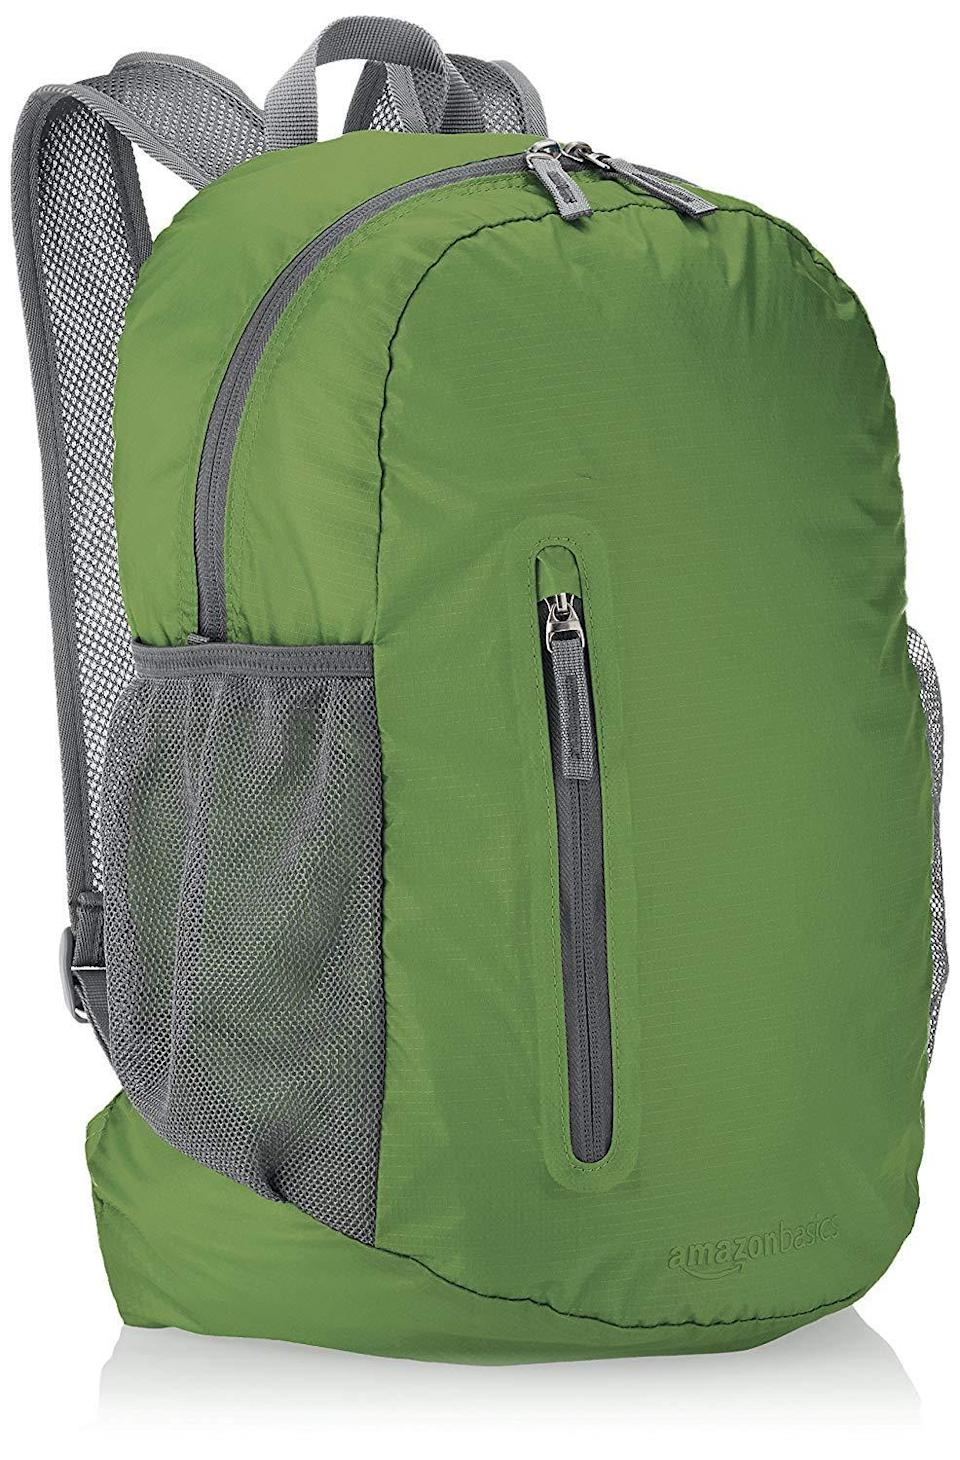 """<h3>AmazonBasics Ultralight Portable Packable Day Pack</h3> <br>This affordable Amazon pick won't slow you down on your most lengthy nature walks, while also. being durable (and roomy) enough to fit all your hiking essentials.<br><br><strong>AmazonBasics</strong> Ultralight Portable Packable Day Pack, $, available at <a href=""""https://amzn.to/31mkqL6"""" rel=""""nofollow noopener"""" target=""""_blank"""" data-ylk=""""slk:Amazon"""" class=""""link rapid-noclick-resp"""">Amazon</a><br>"""